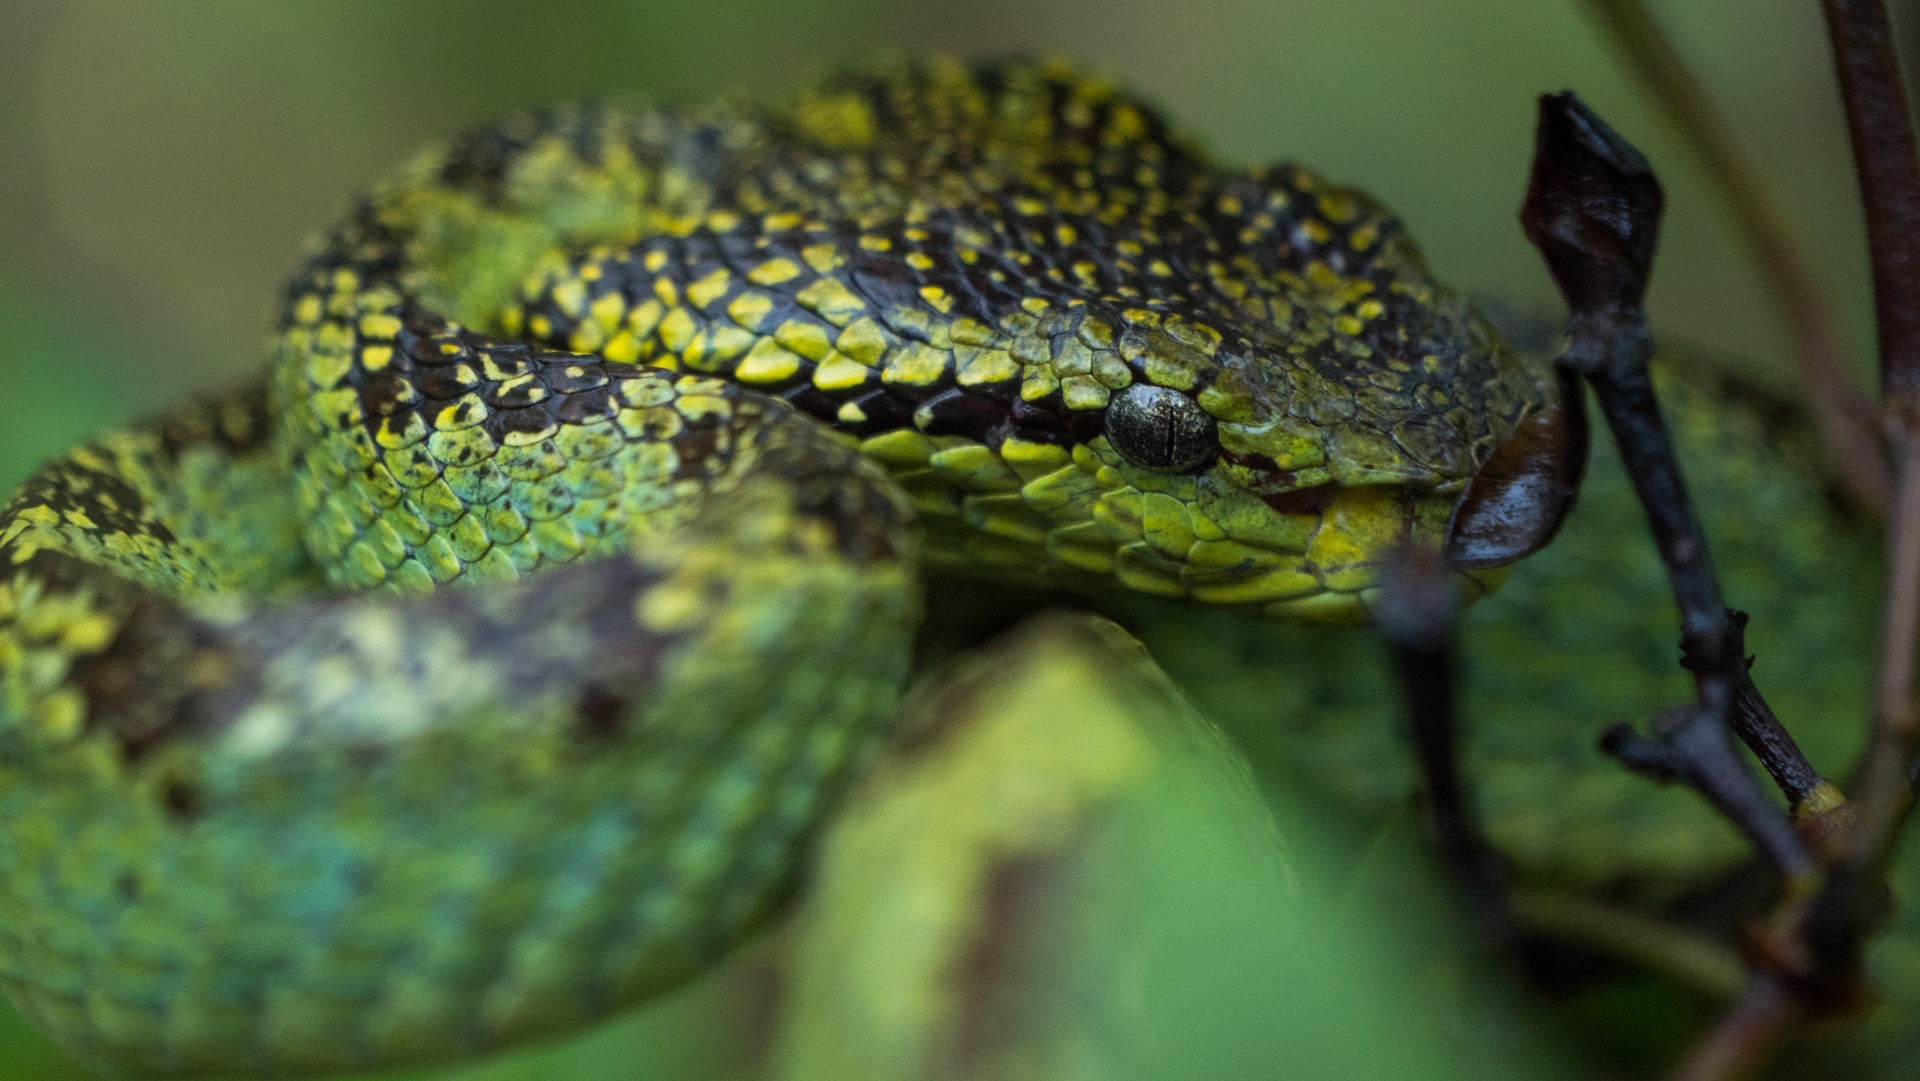 Pit vipers, like this Malabar pit viper, are named after their 'pit organs', located on both sides of the head, between the nostril and eye. Though scientists are yet to understand the full working of this organ, we do know that they are heat-sensitive organs that allow the snake to detect warm-blooded animals, which enables hunting after dark. Photo: Pradeep Hegde